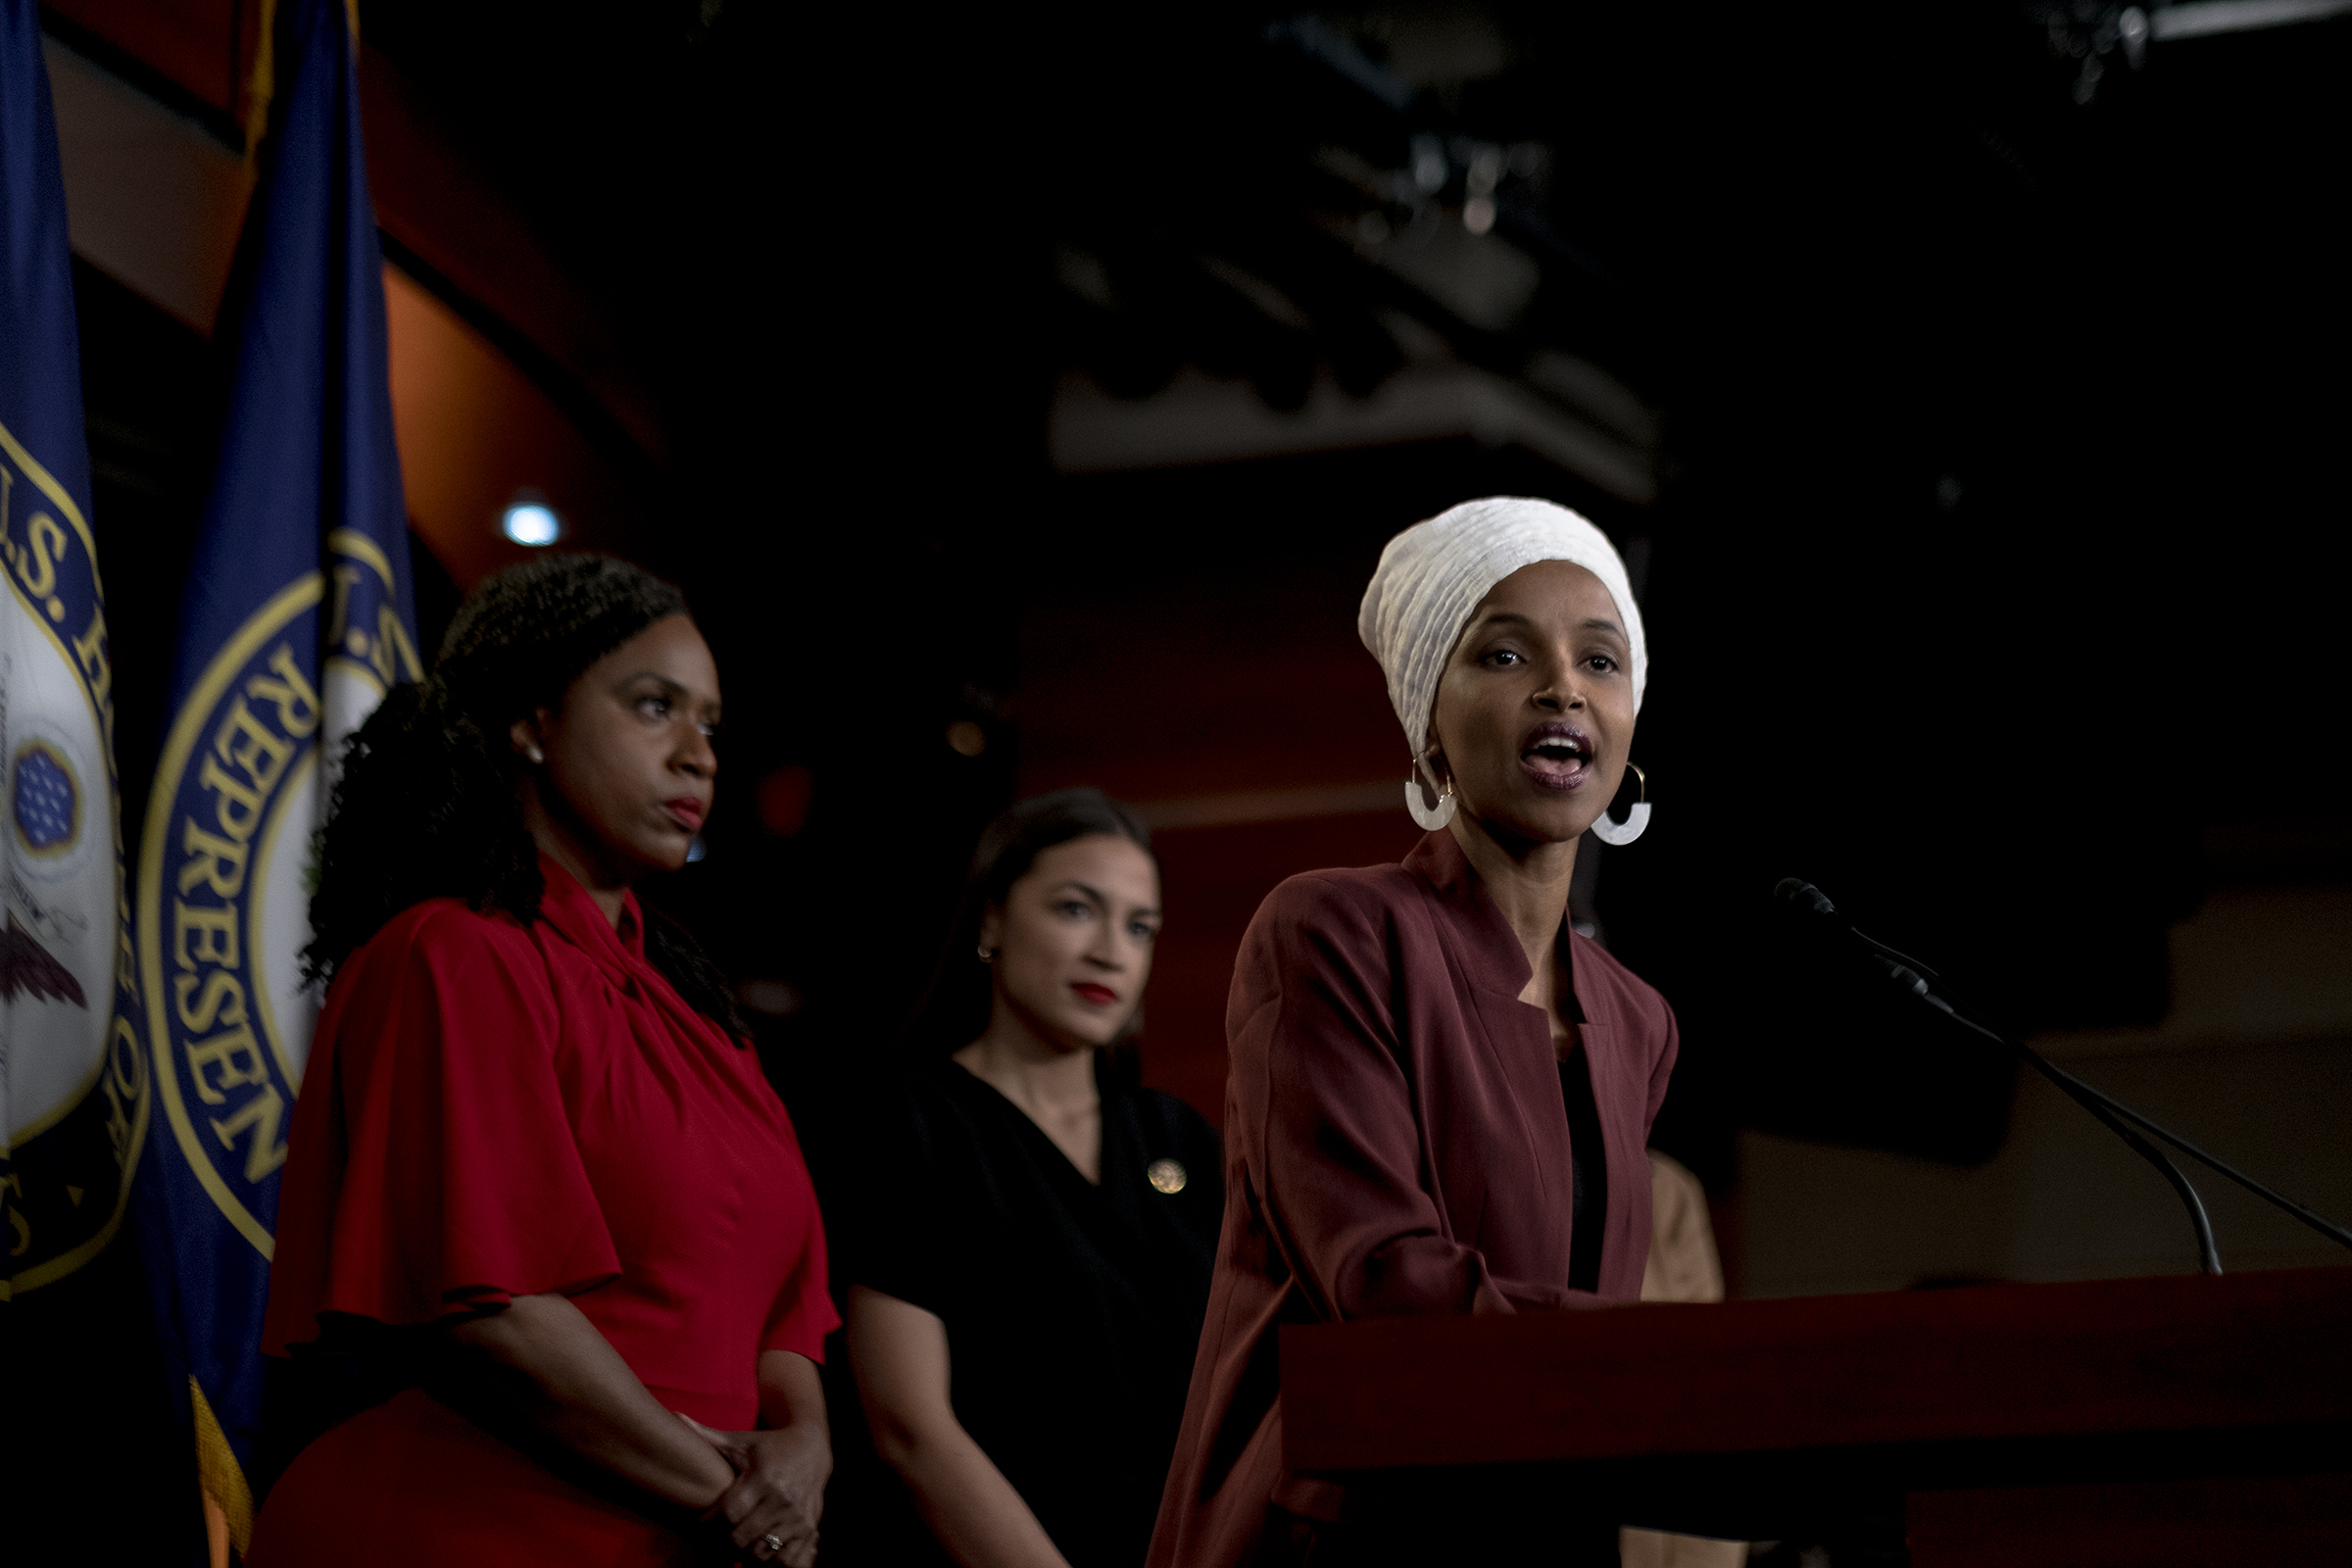 Omar speaks at a press conference following Trump's racist Twitter attack on July 15, 2019.